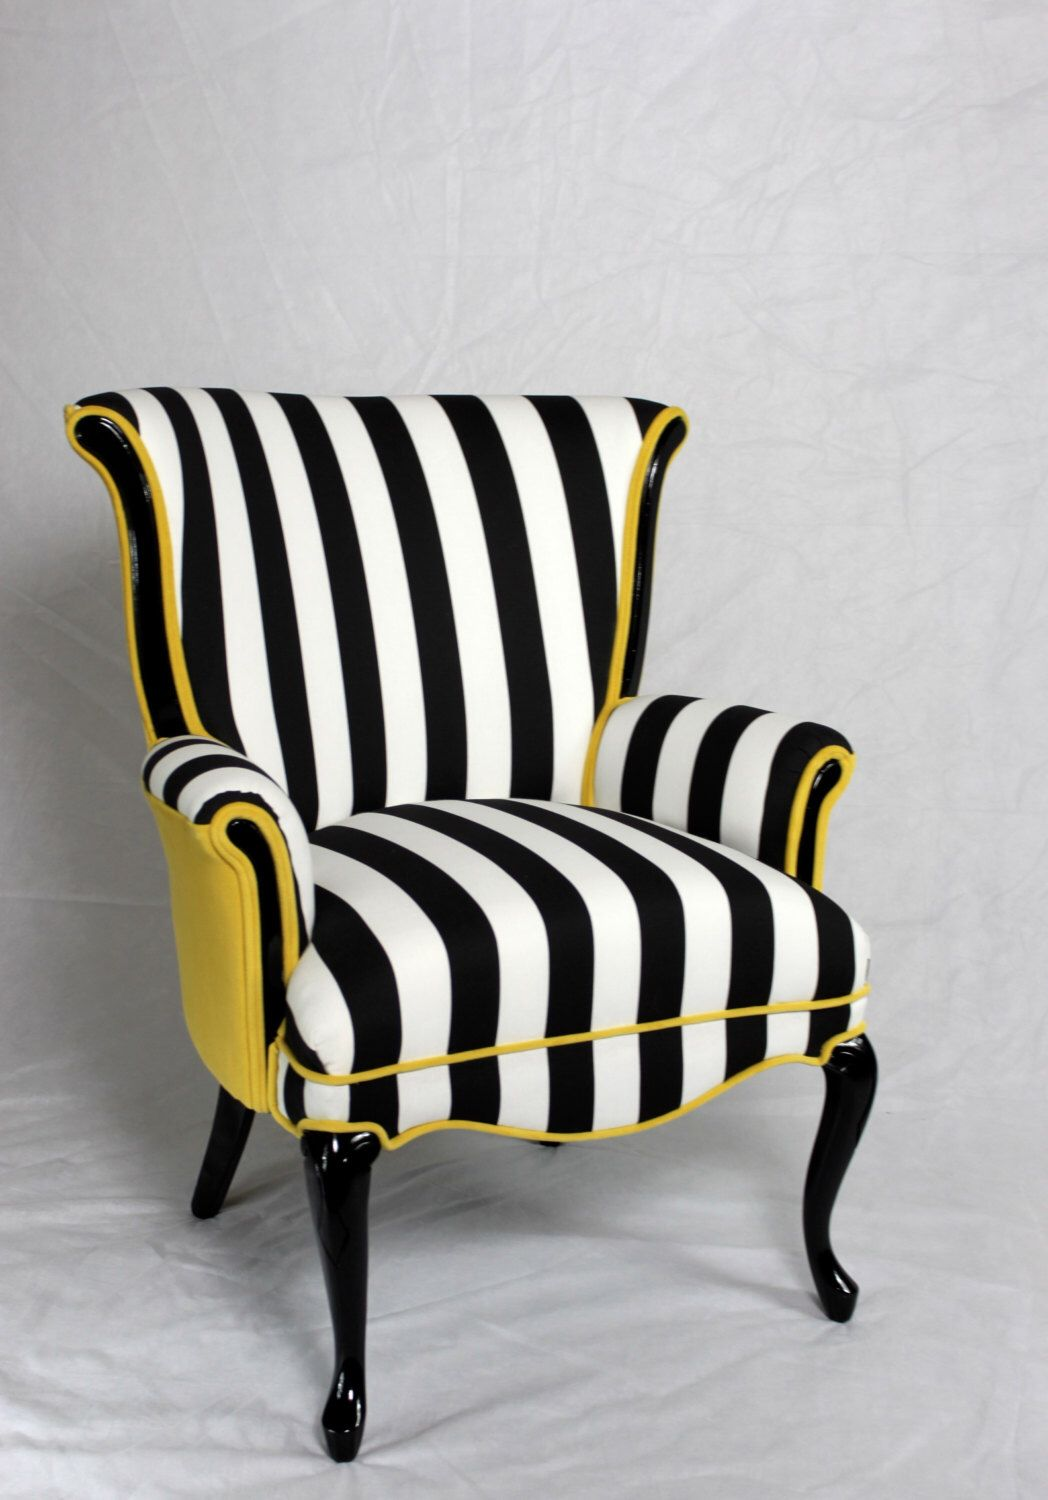 Black And White Stripe Chair With Yellow Velvet. Vintage Wing Back Chair  Mid Century Modern Chair. Element 20 Designs. Iu0027d Either Replace The Yellow  With ...